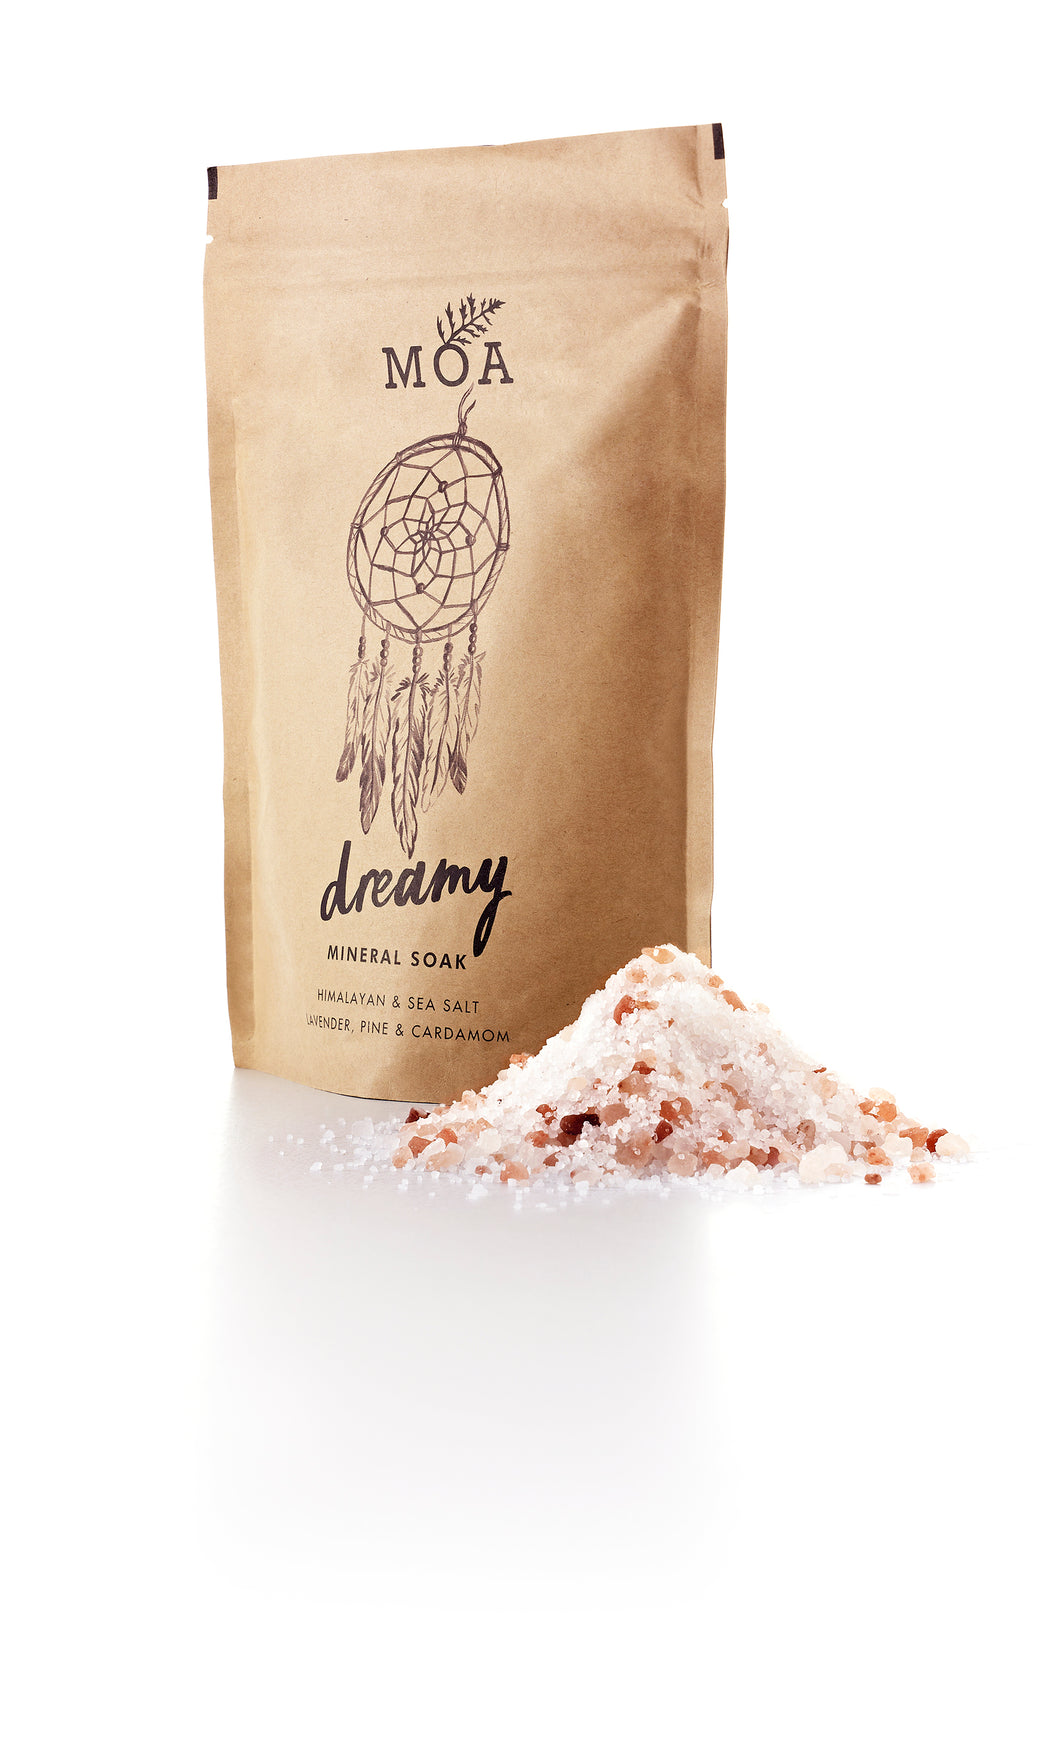 Dreamy Mineral Soak - Magic Organic Apothecary - Blomma Beauty